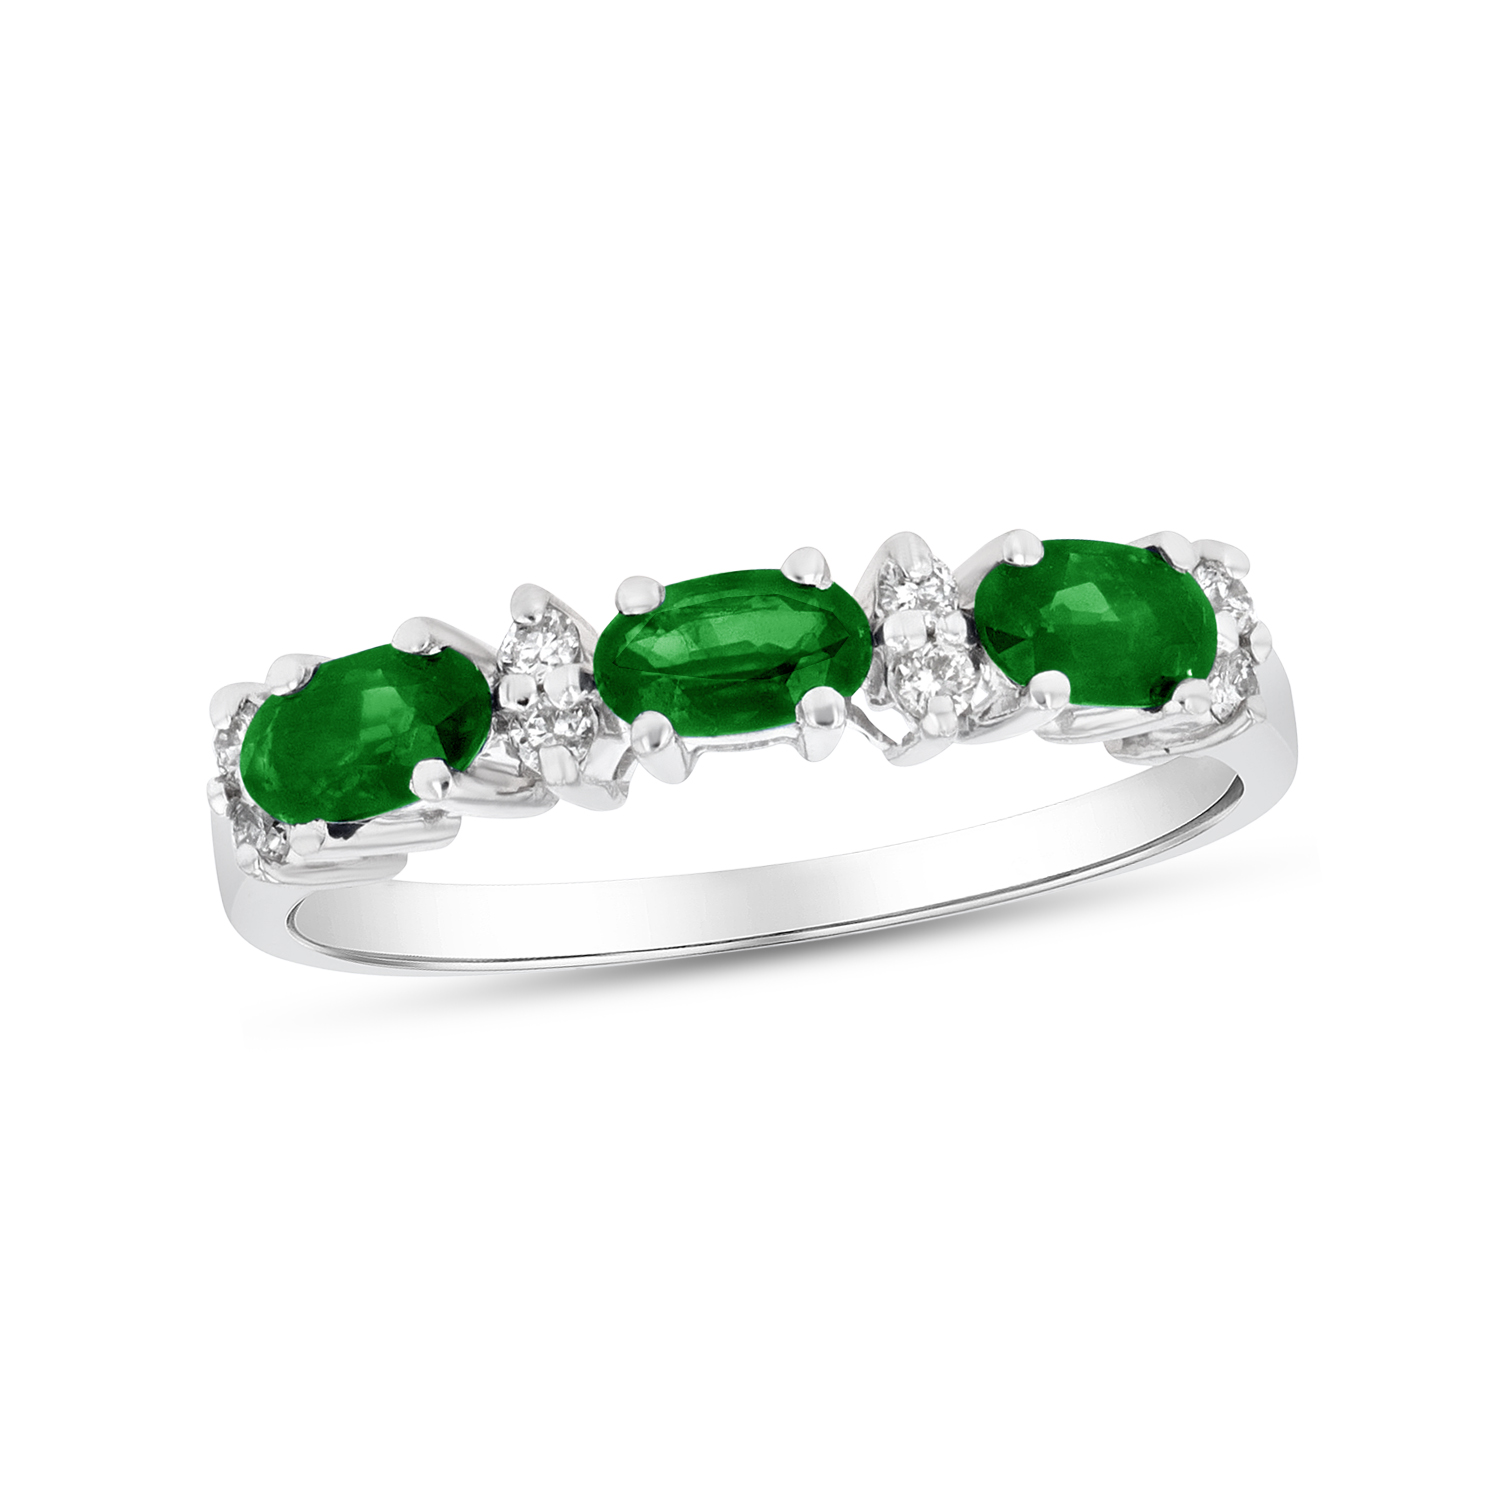 View 0.75ctw Diamond and Emerald Band in 14k White Gold